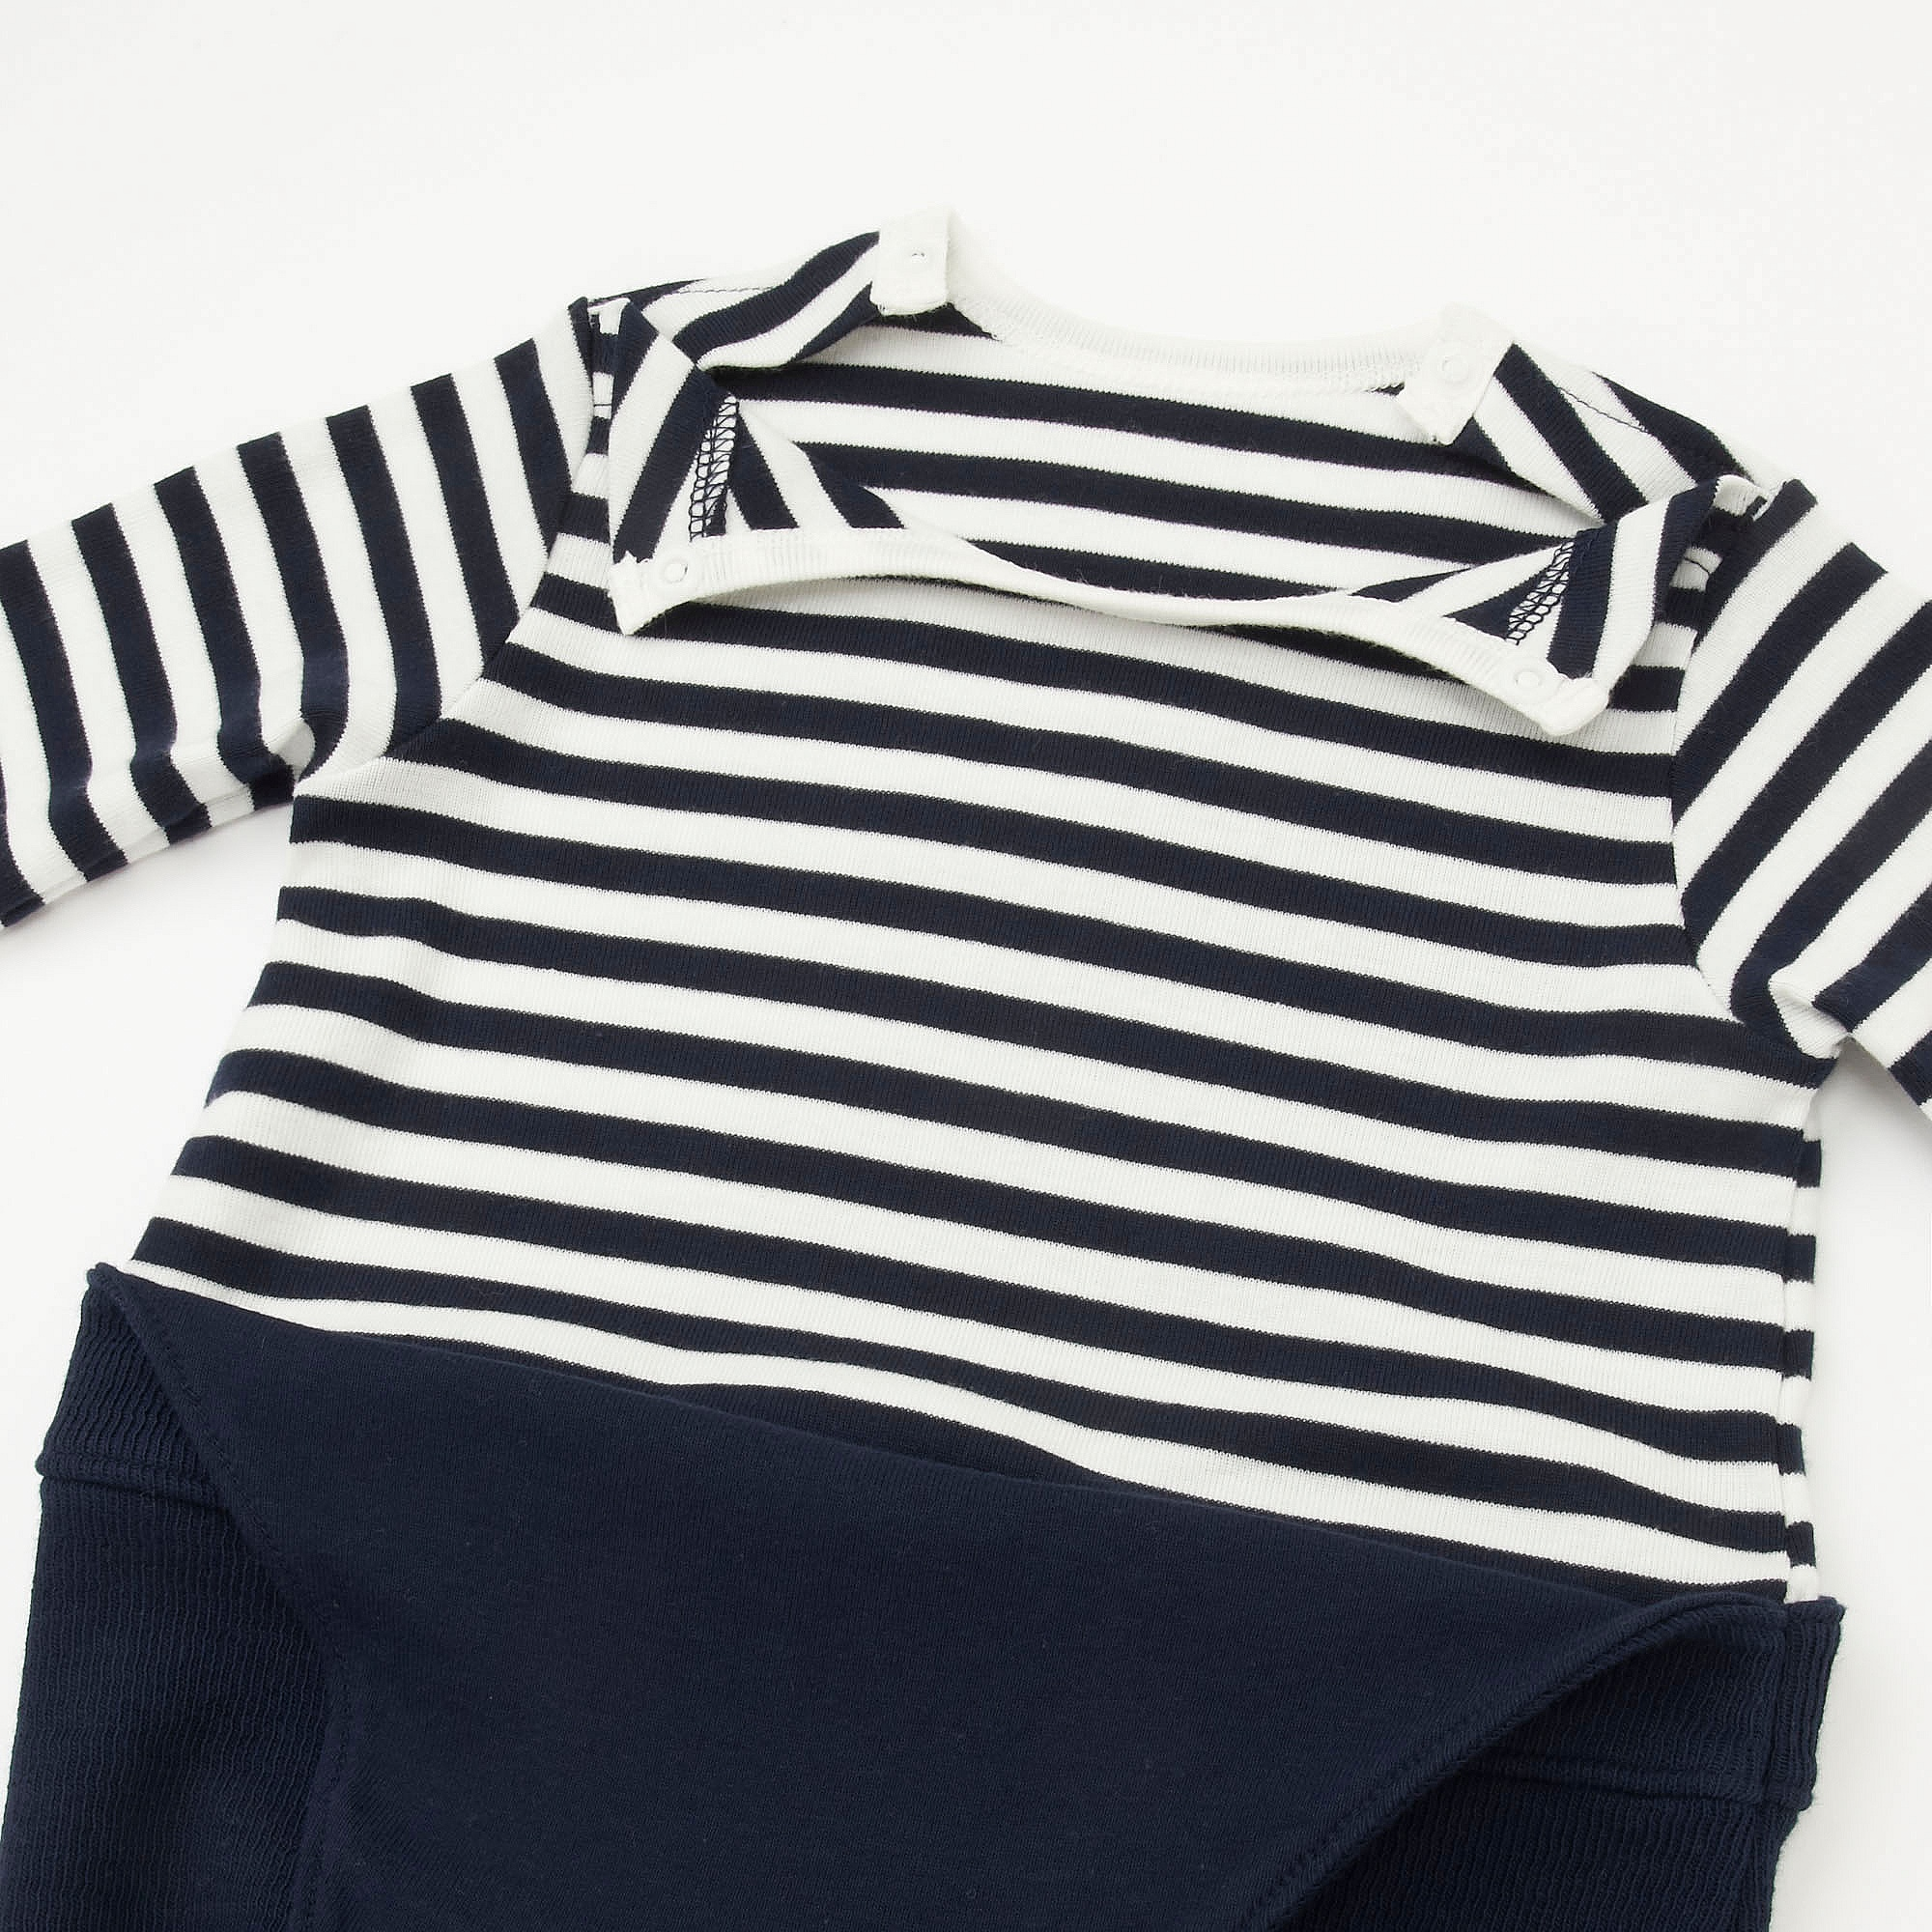 1c49ee9e9 Uniqlo BABIES NEWBORN COORDINATE LONG SLEEVE ONE PIECE OUTFIT at ...